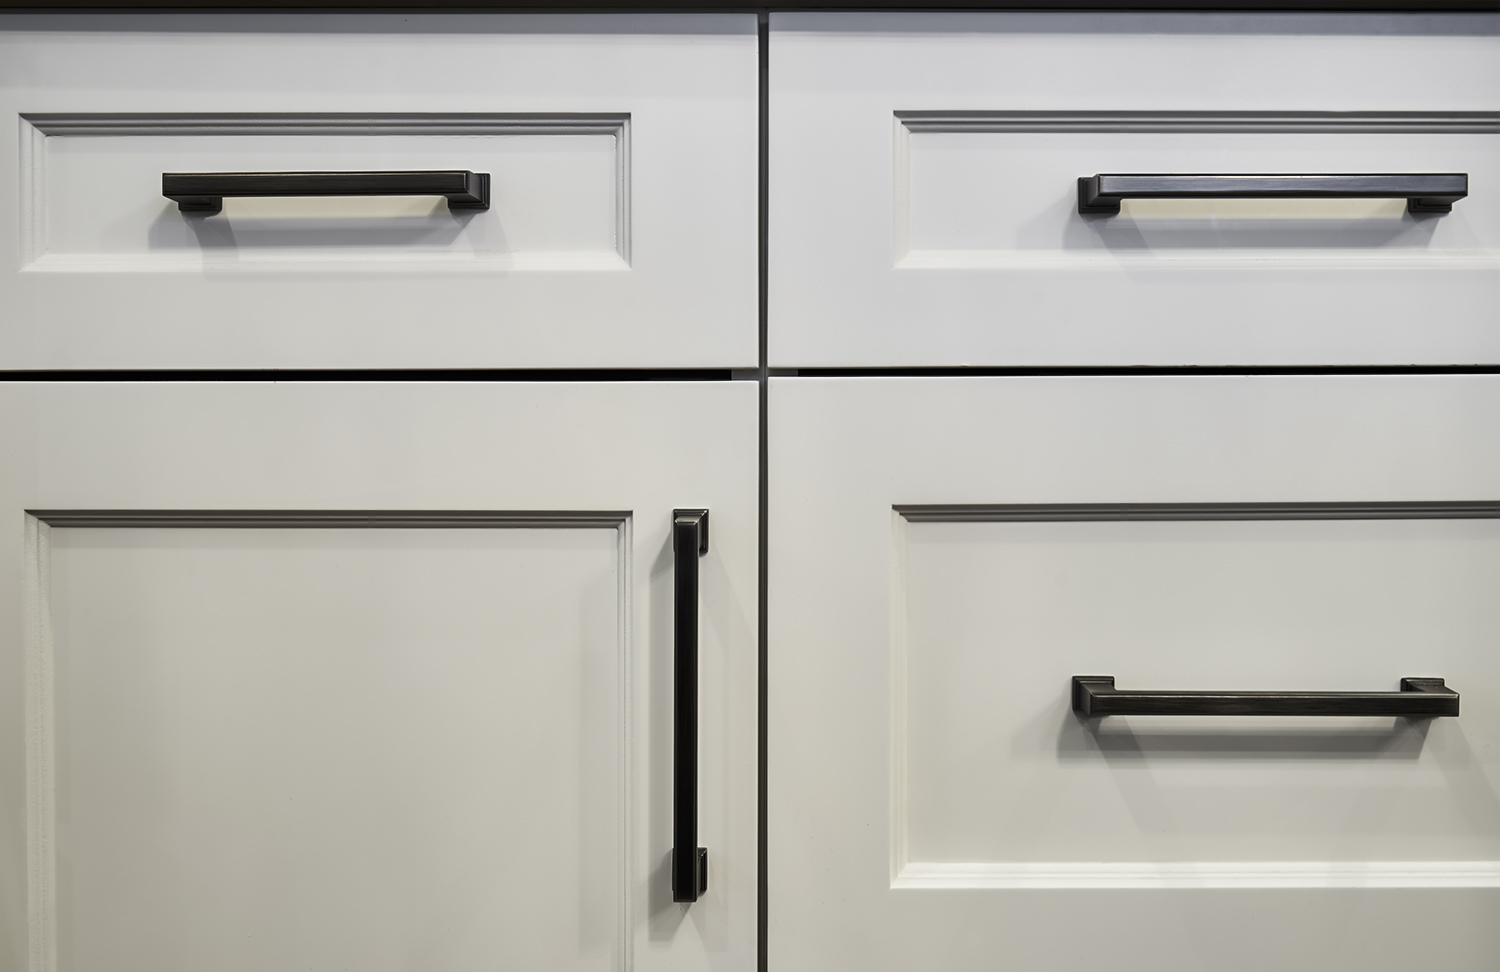 Lower Custom Cabinetry detail shot